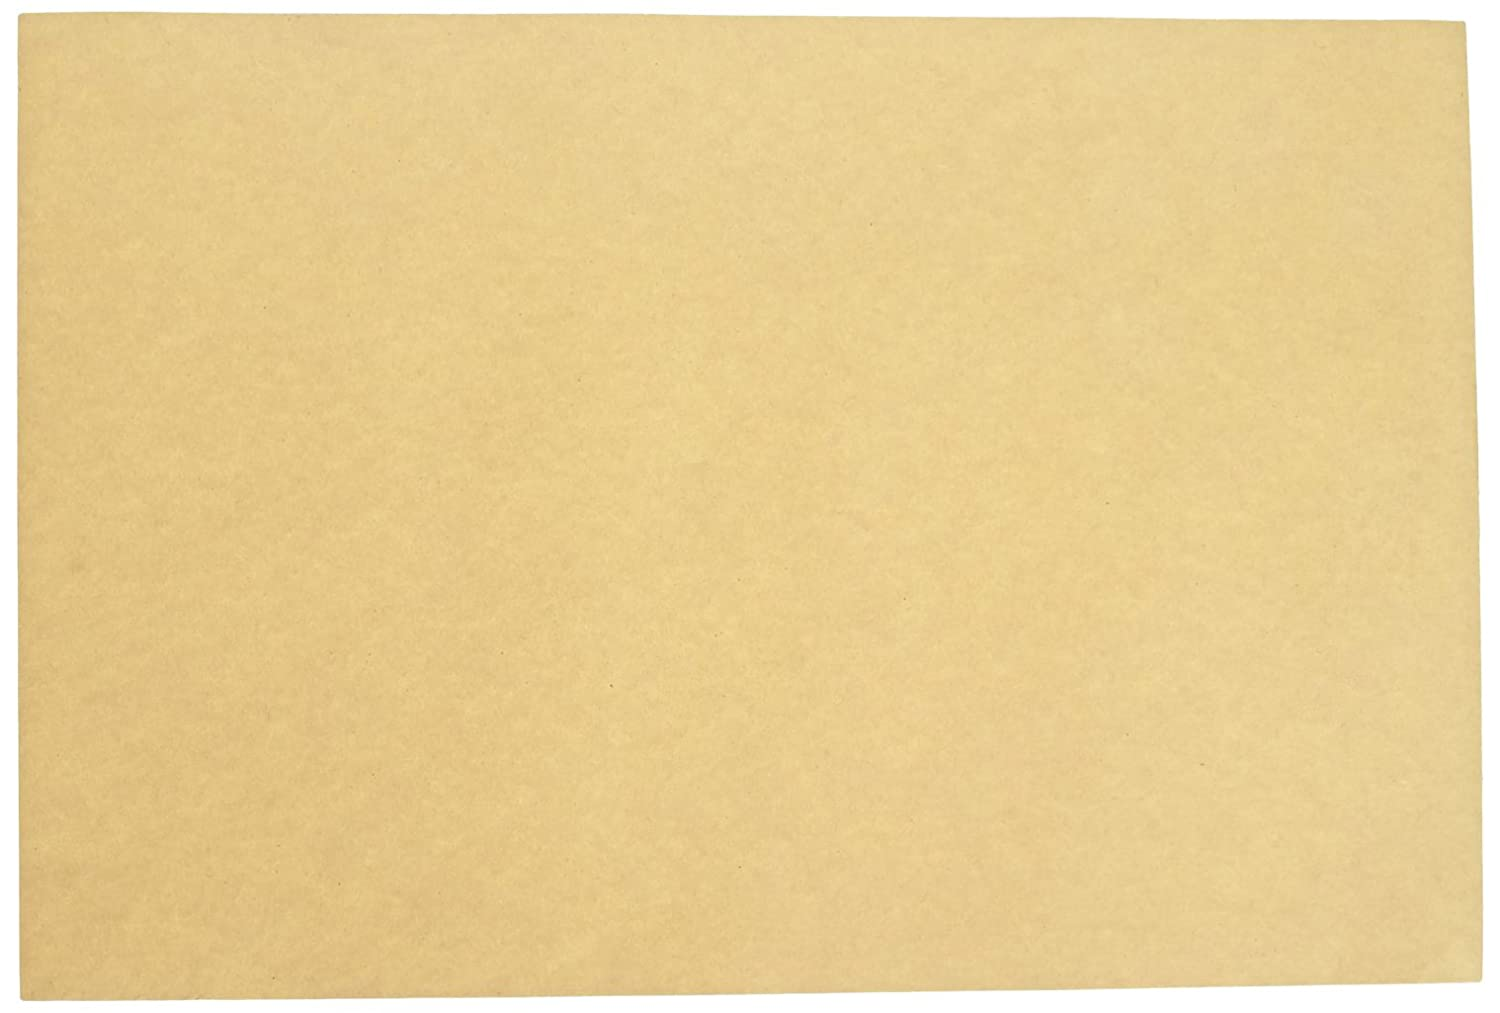 Sax Drawing Paper 40 lb - 9 x 12 inches - Pack of 500 Sheets - Manila 085529